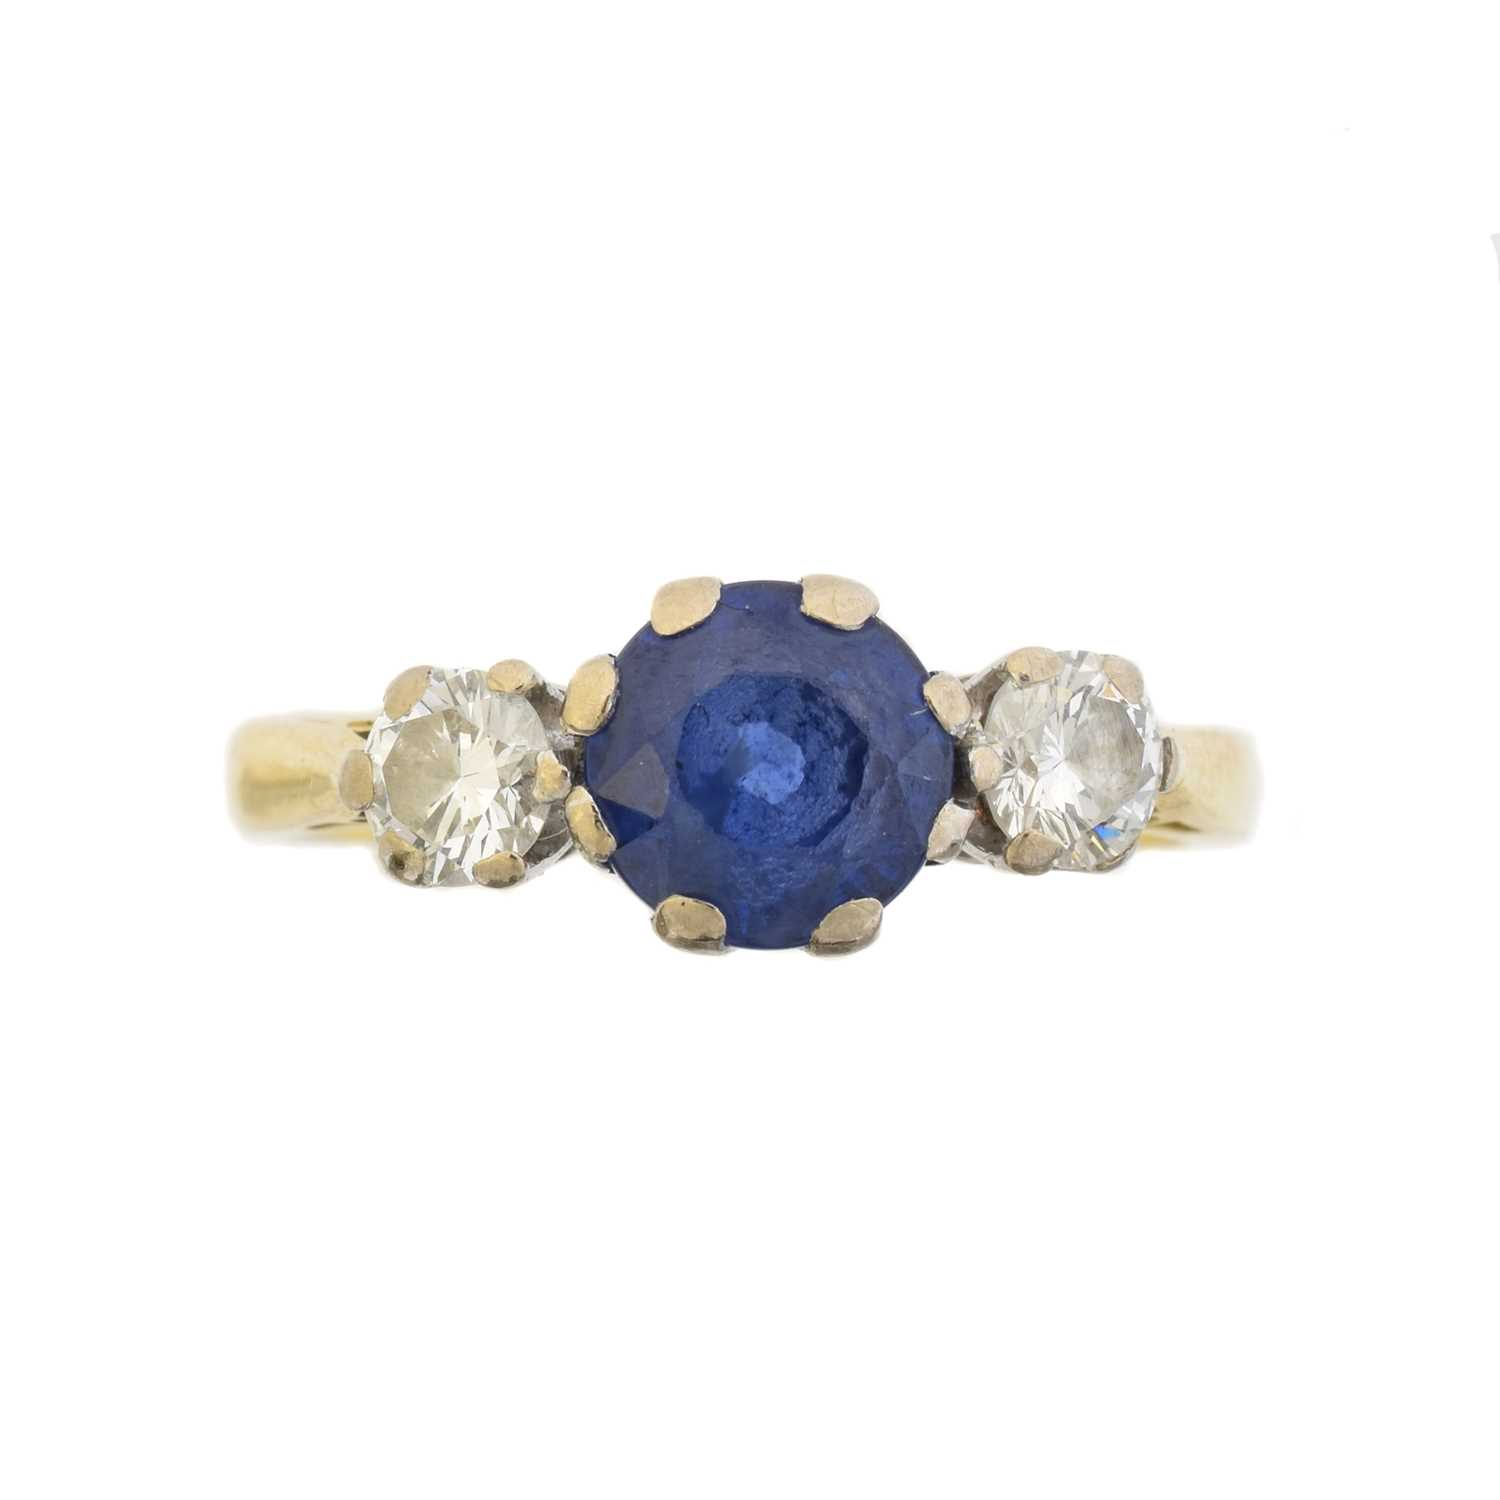 Lot An 18ct gold sapphire and diamond three stone ring by Boodles